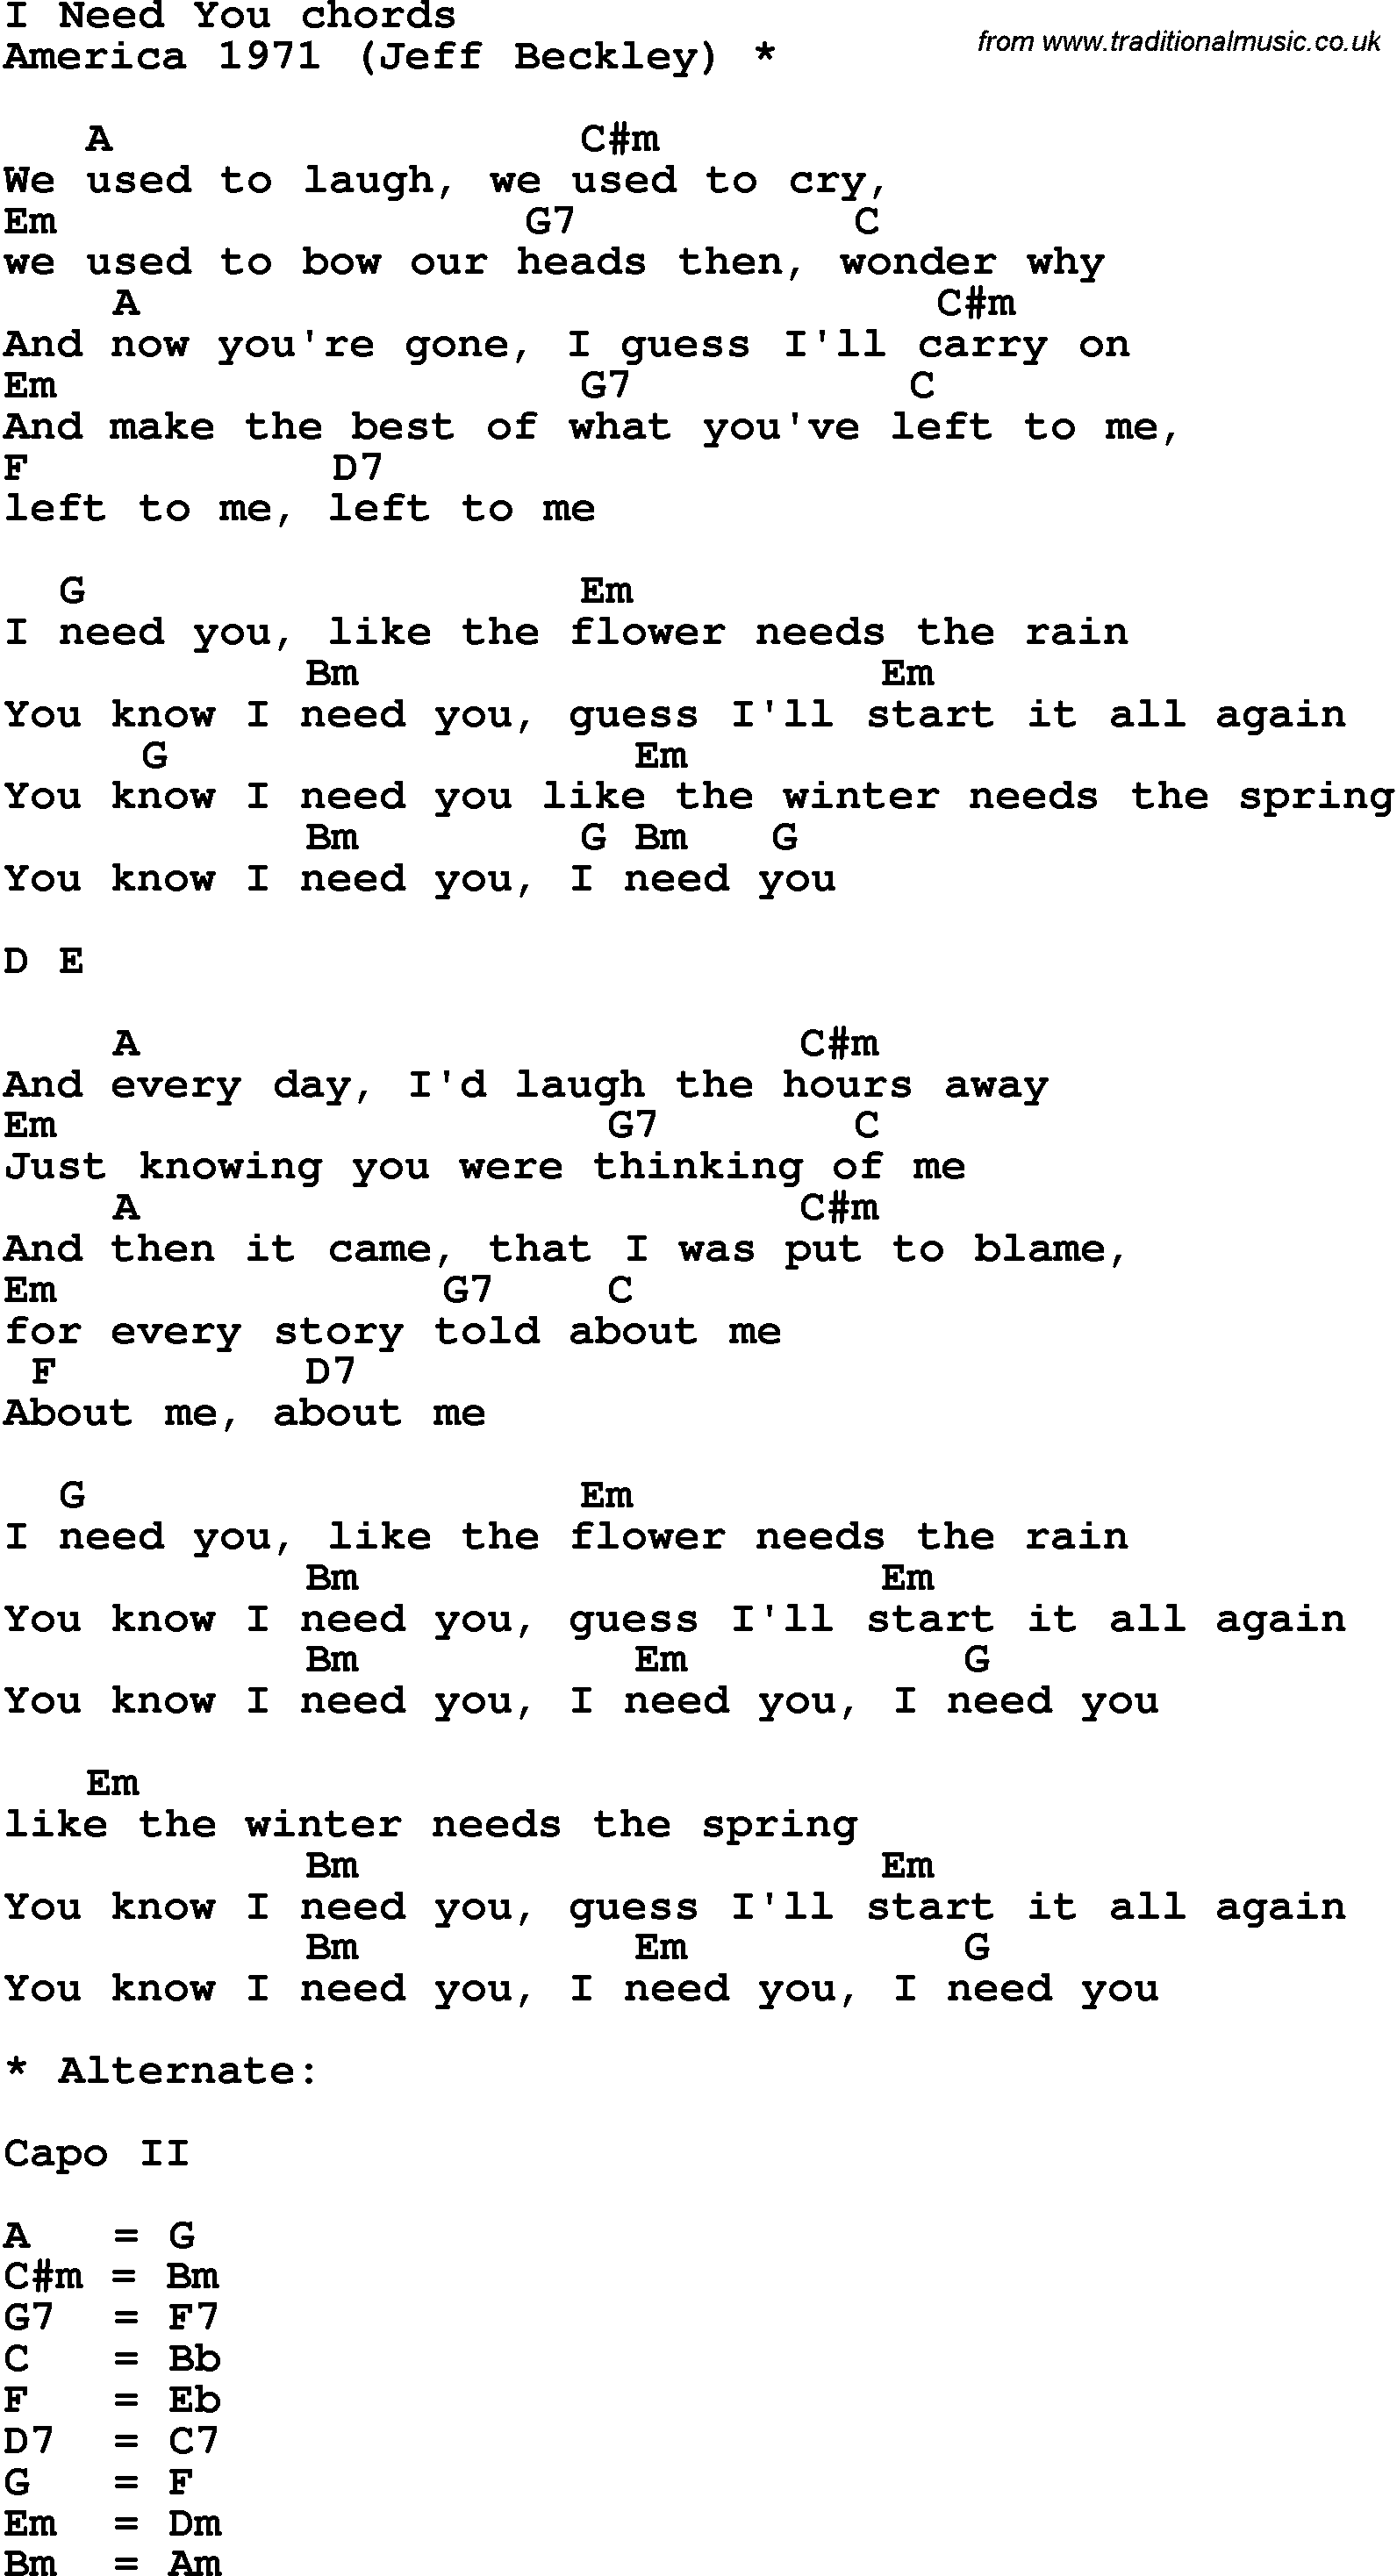 Song Lyrics With Guitar Chords For I Need You America 1971